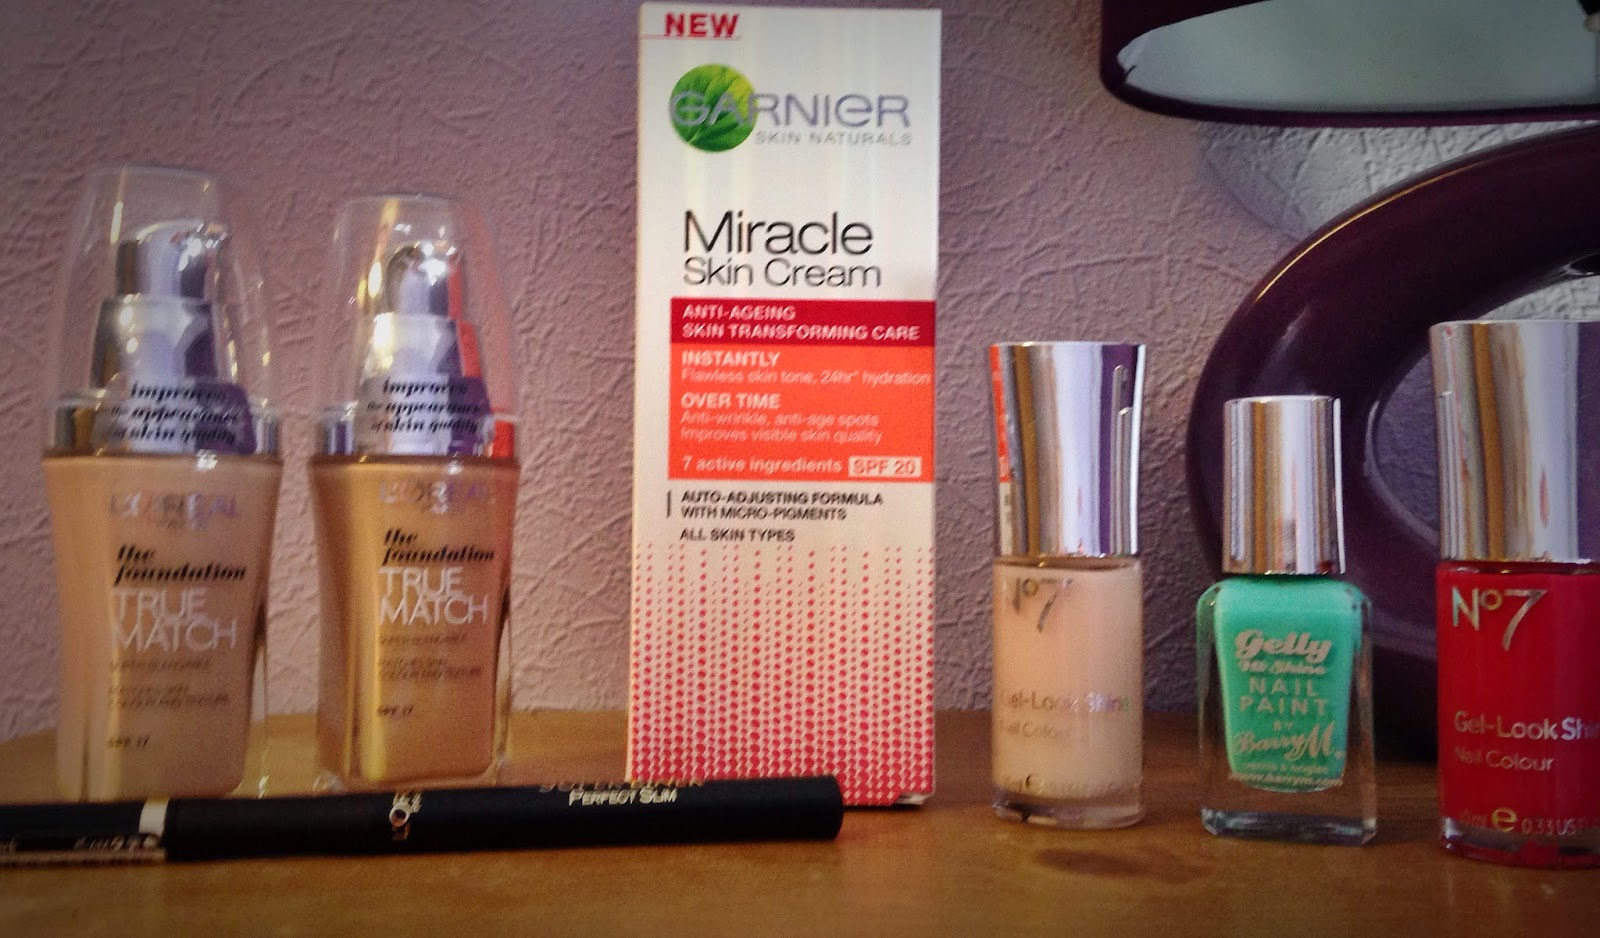 L'Oreal True Match foundation, Garnier Miracle cream, Barry M Gelly Nail Varnish, No7 Nail Varnish, Eyeliner